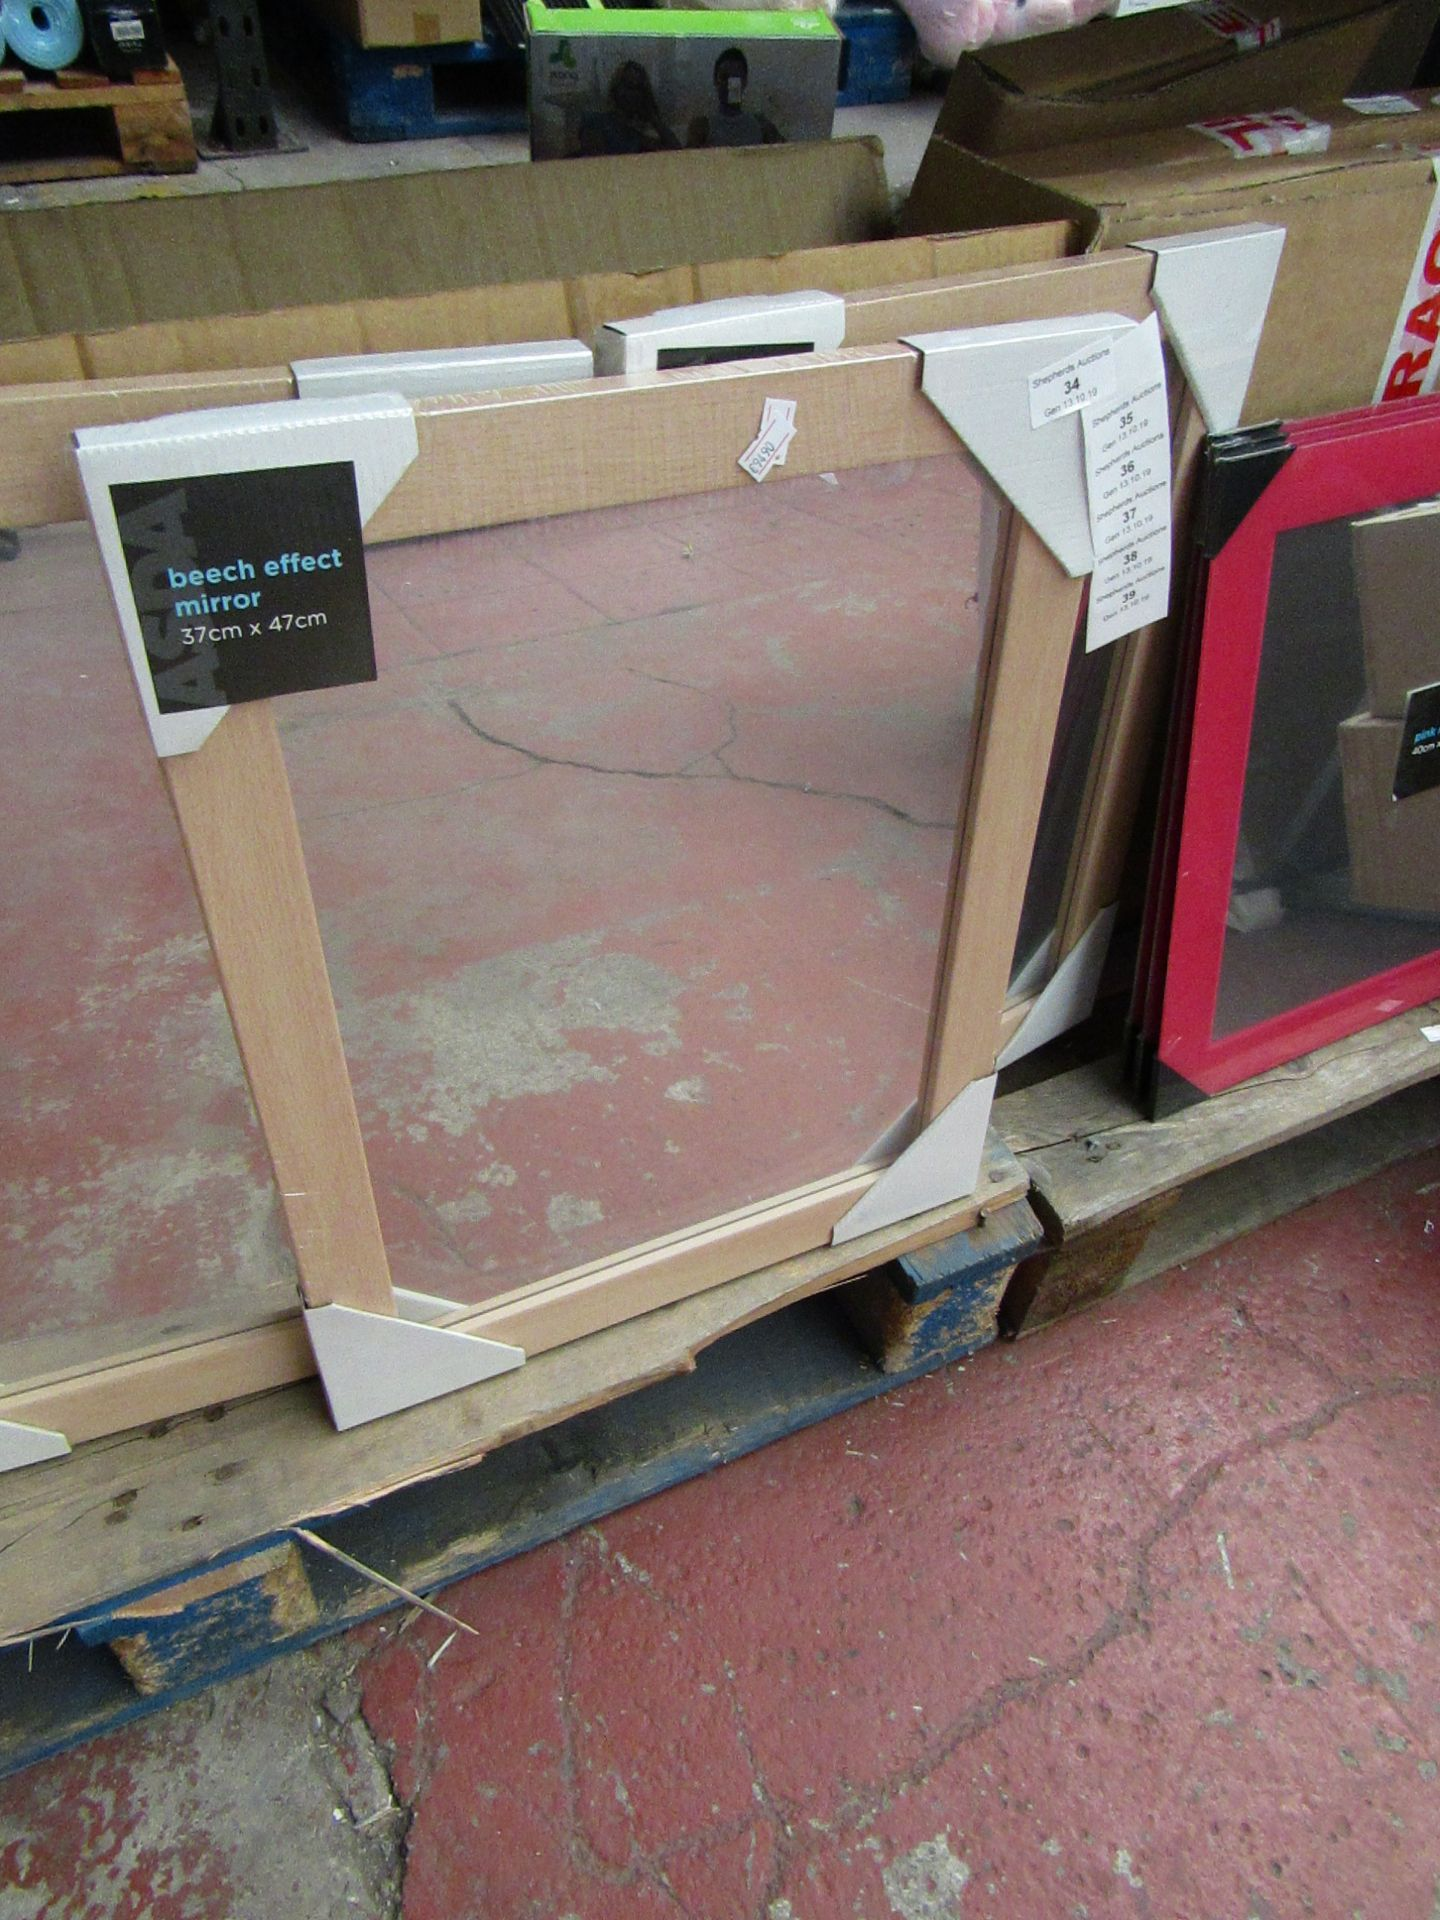 Lot 38 - Beech effect mirror, 37 x 47cm, new and packaged.